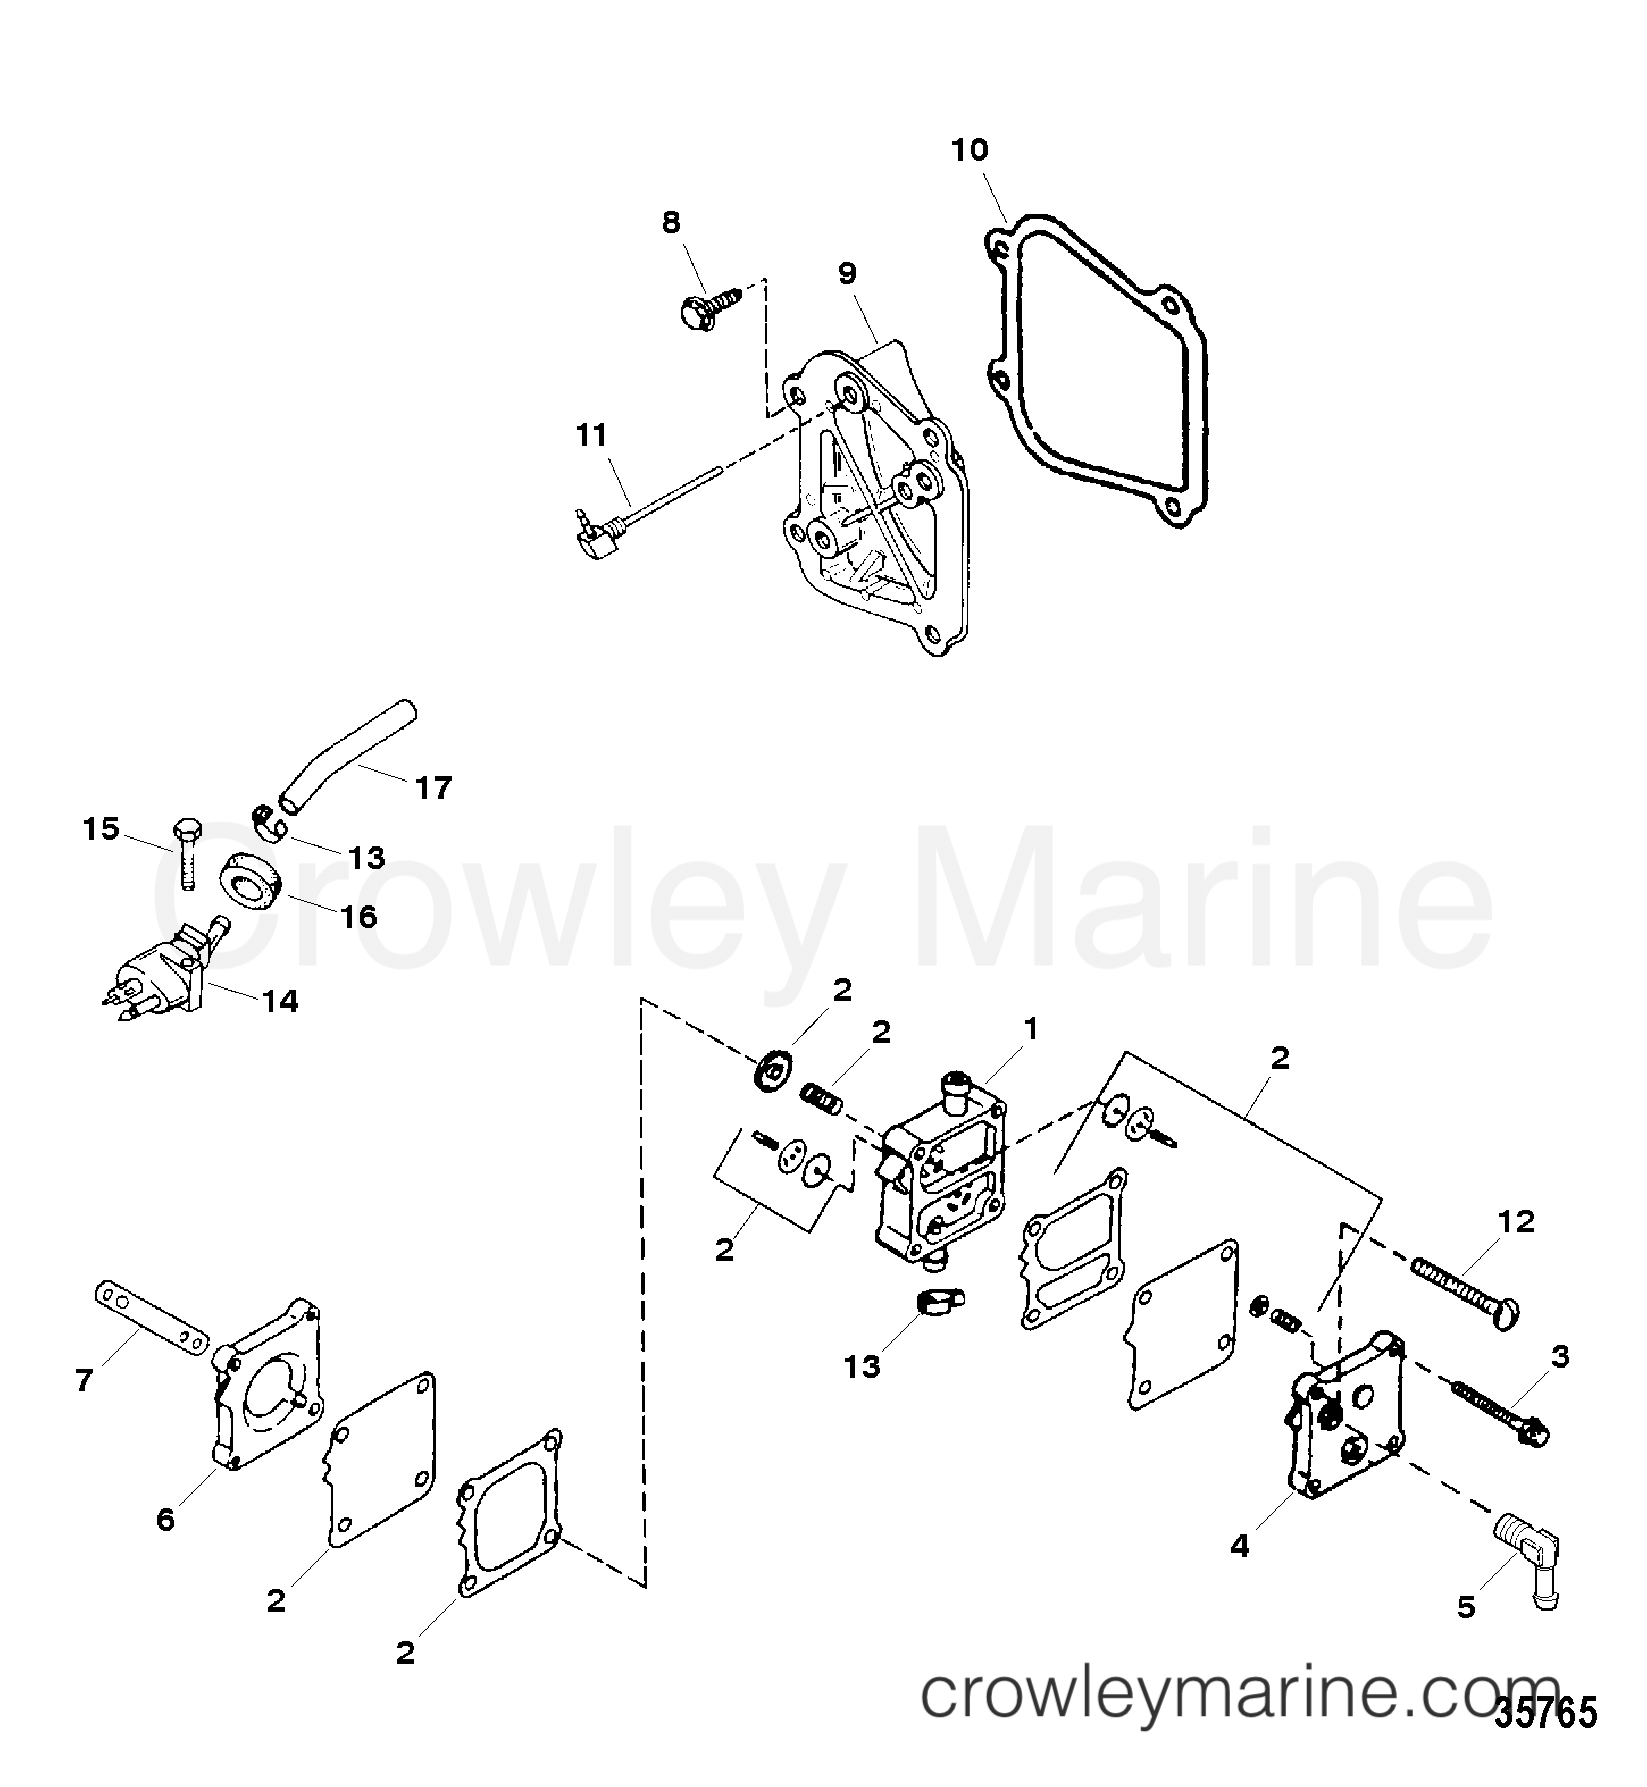 Fuel Pump Assembly And Components 1998 Force Outboard 40